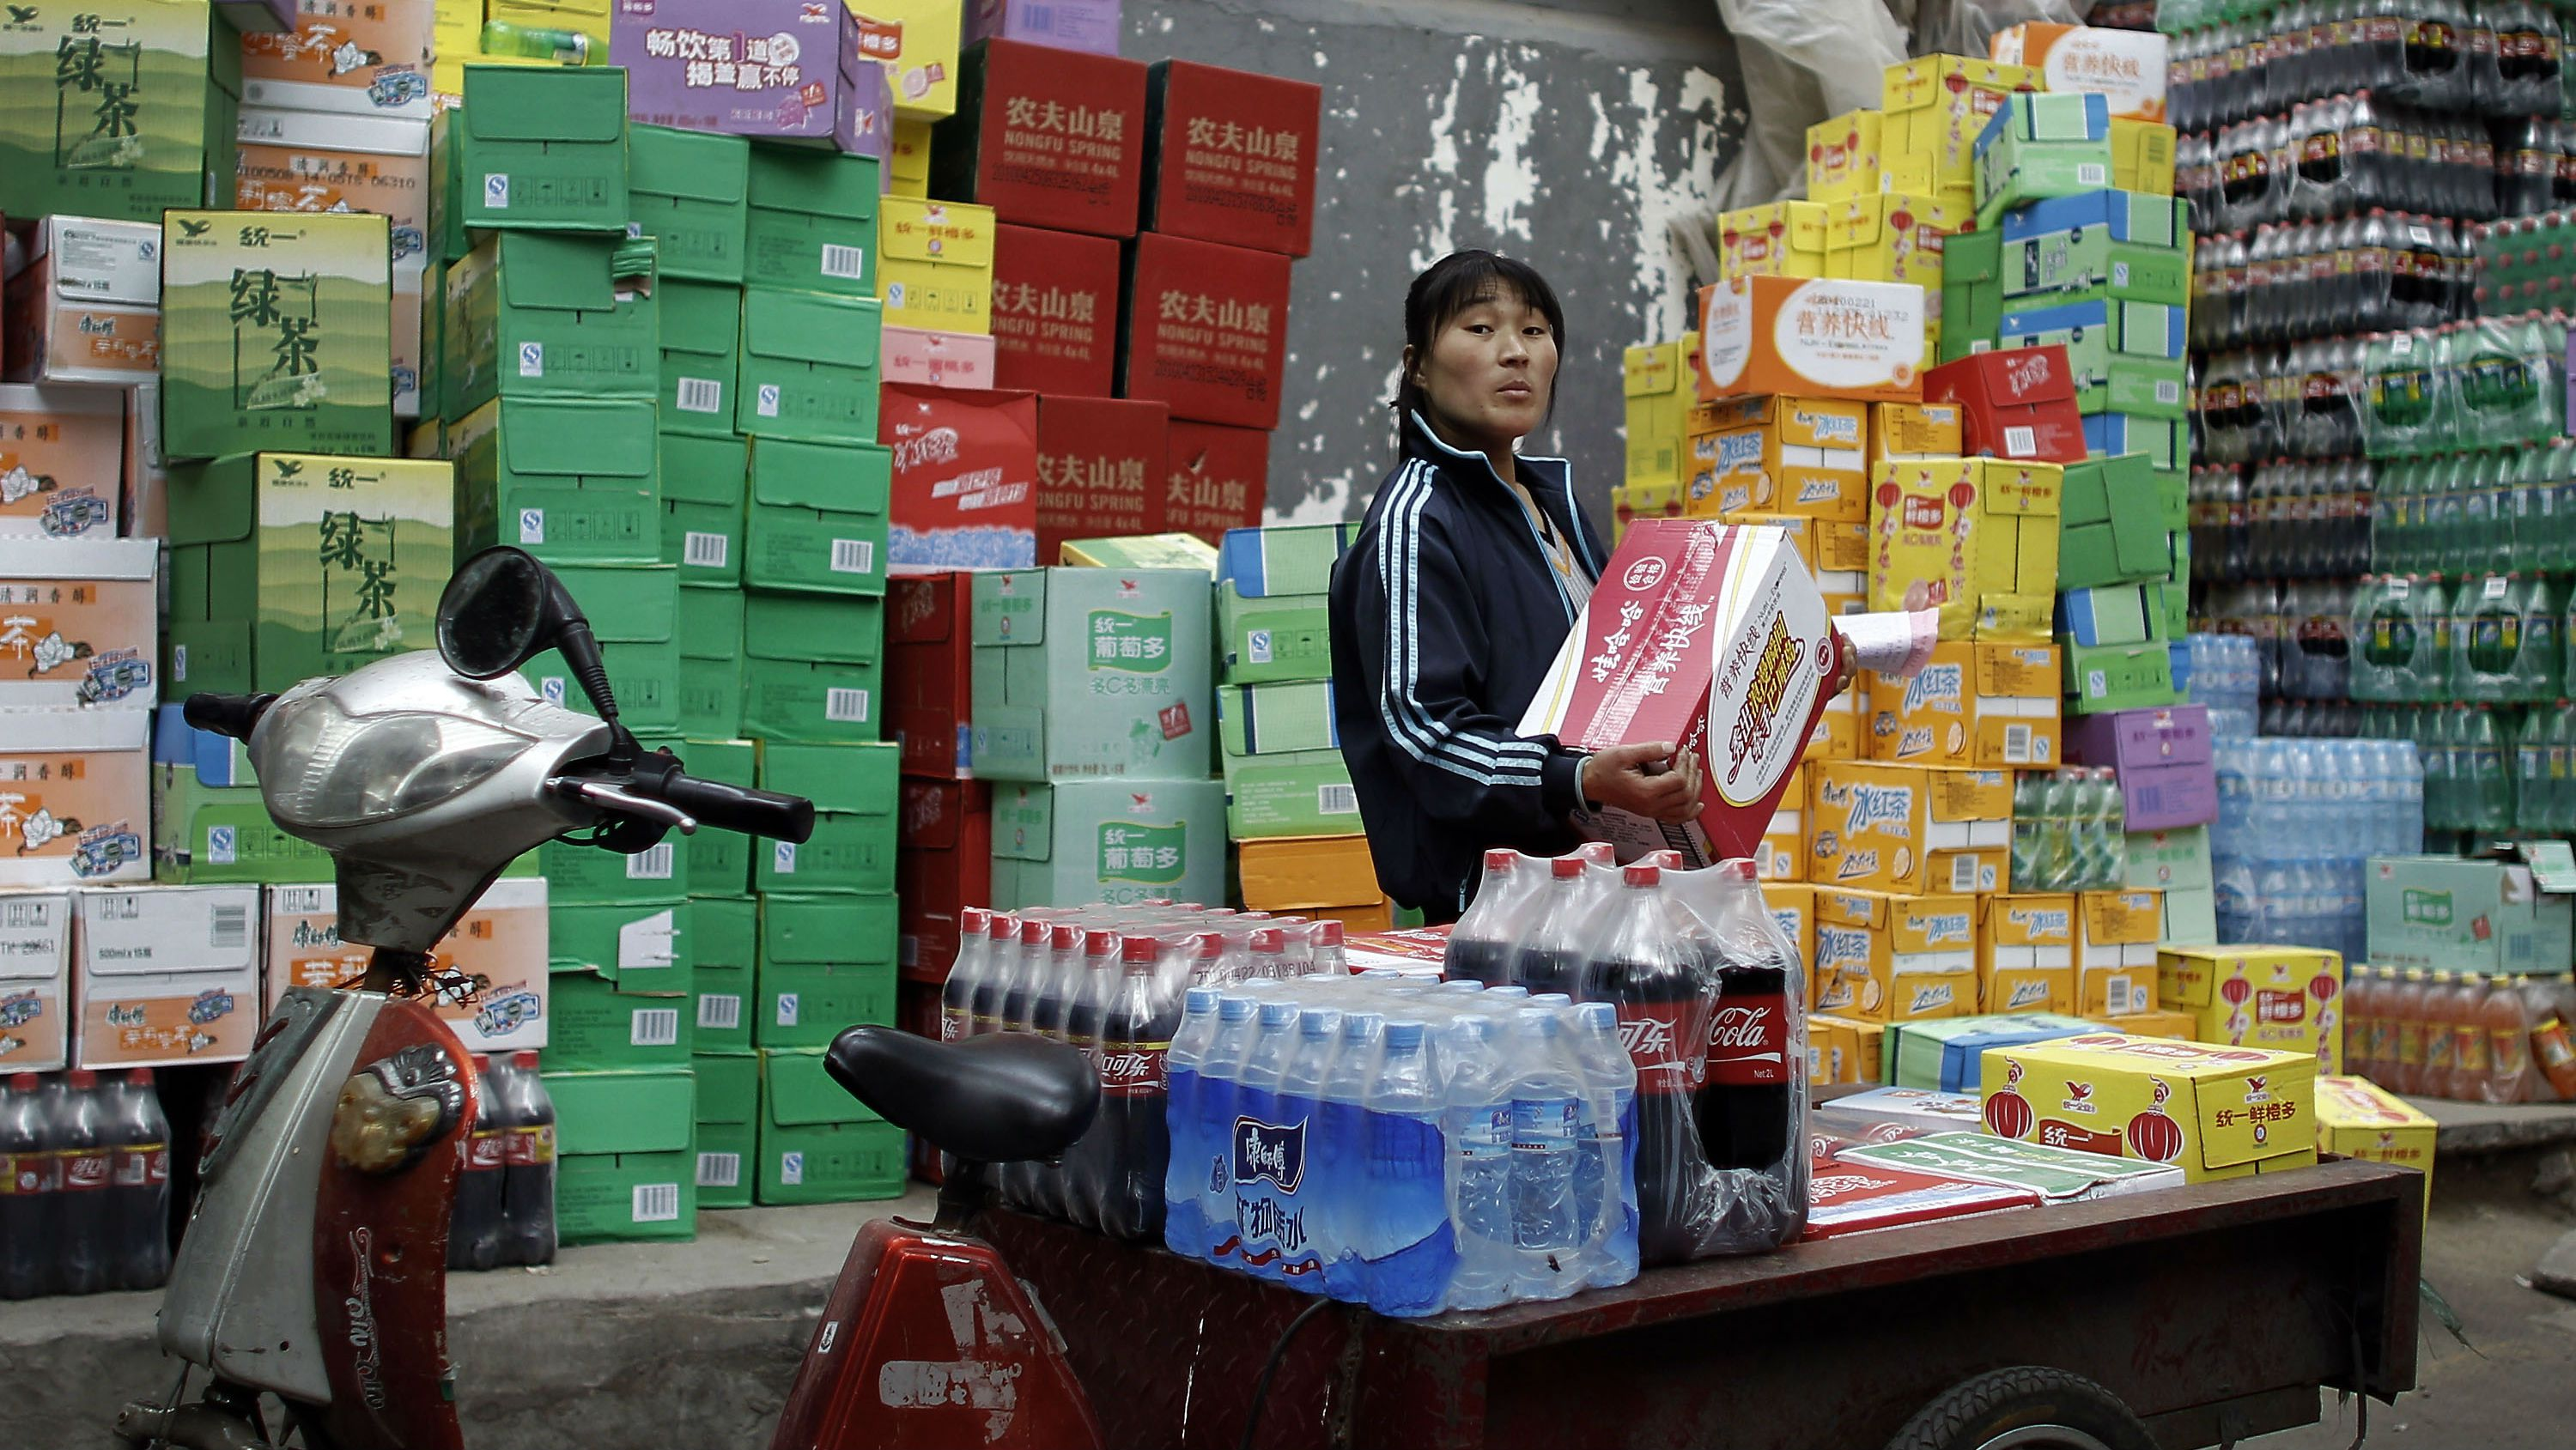 FILE - In this May 14, 2010 file photo, a woman loads beverages on her tri-cycle cart outside a store in Beijing. China's inflation rose in May amid signs its rebound from the global slump is slowing, adding to pressure on Beijing to keep growth on track and control politically sensitive prices. Consumer prices rose 3.1 percent from a year earlier, up from April's 2.8 percent rate, the National Bureau of Statistics said Friday, June 11, 2010. (AP Photo/Andy Wong, File)